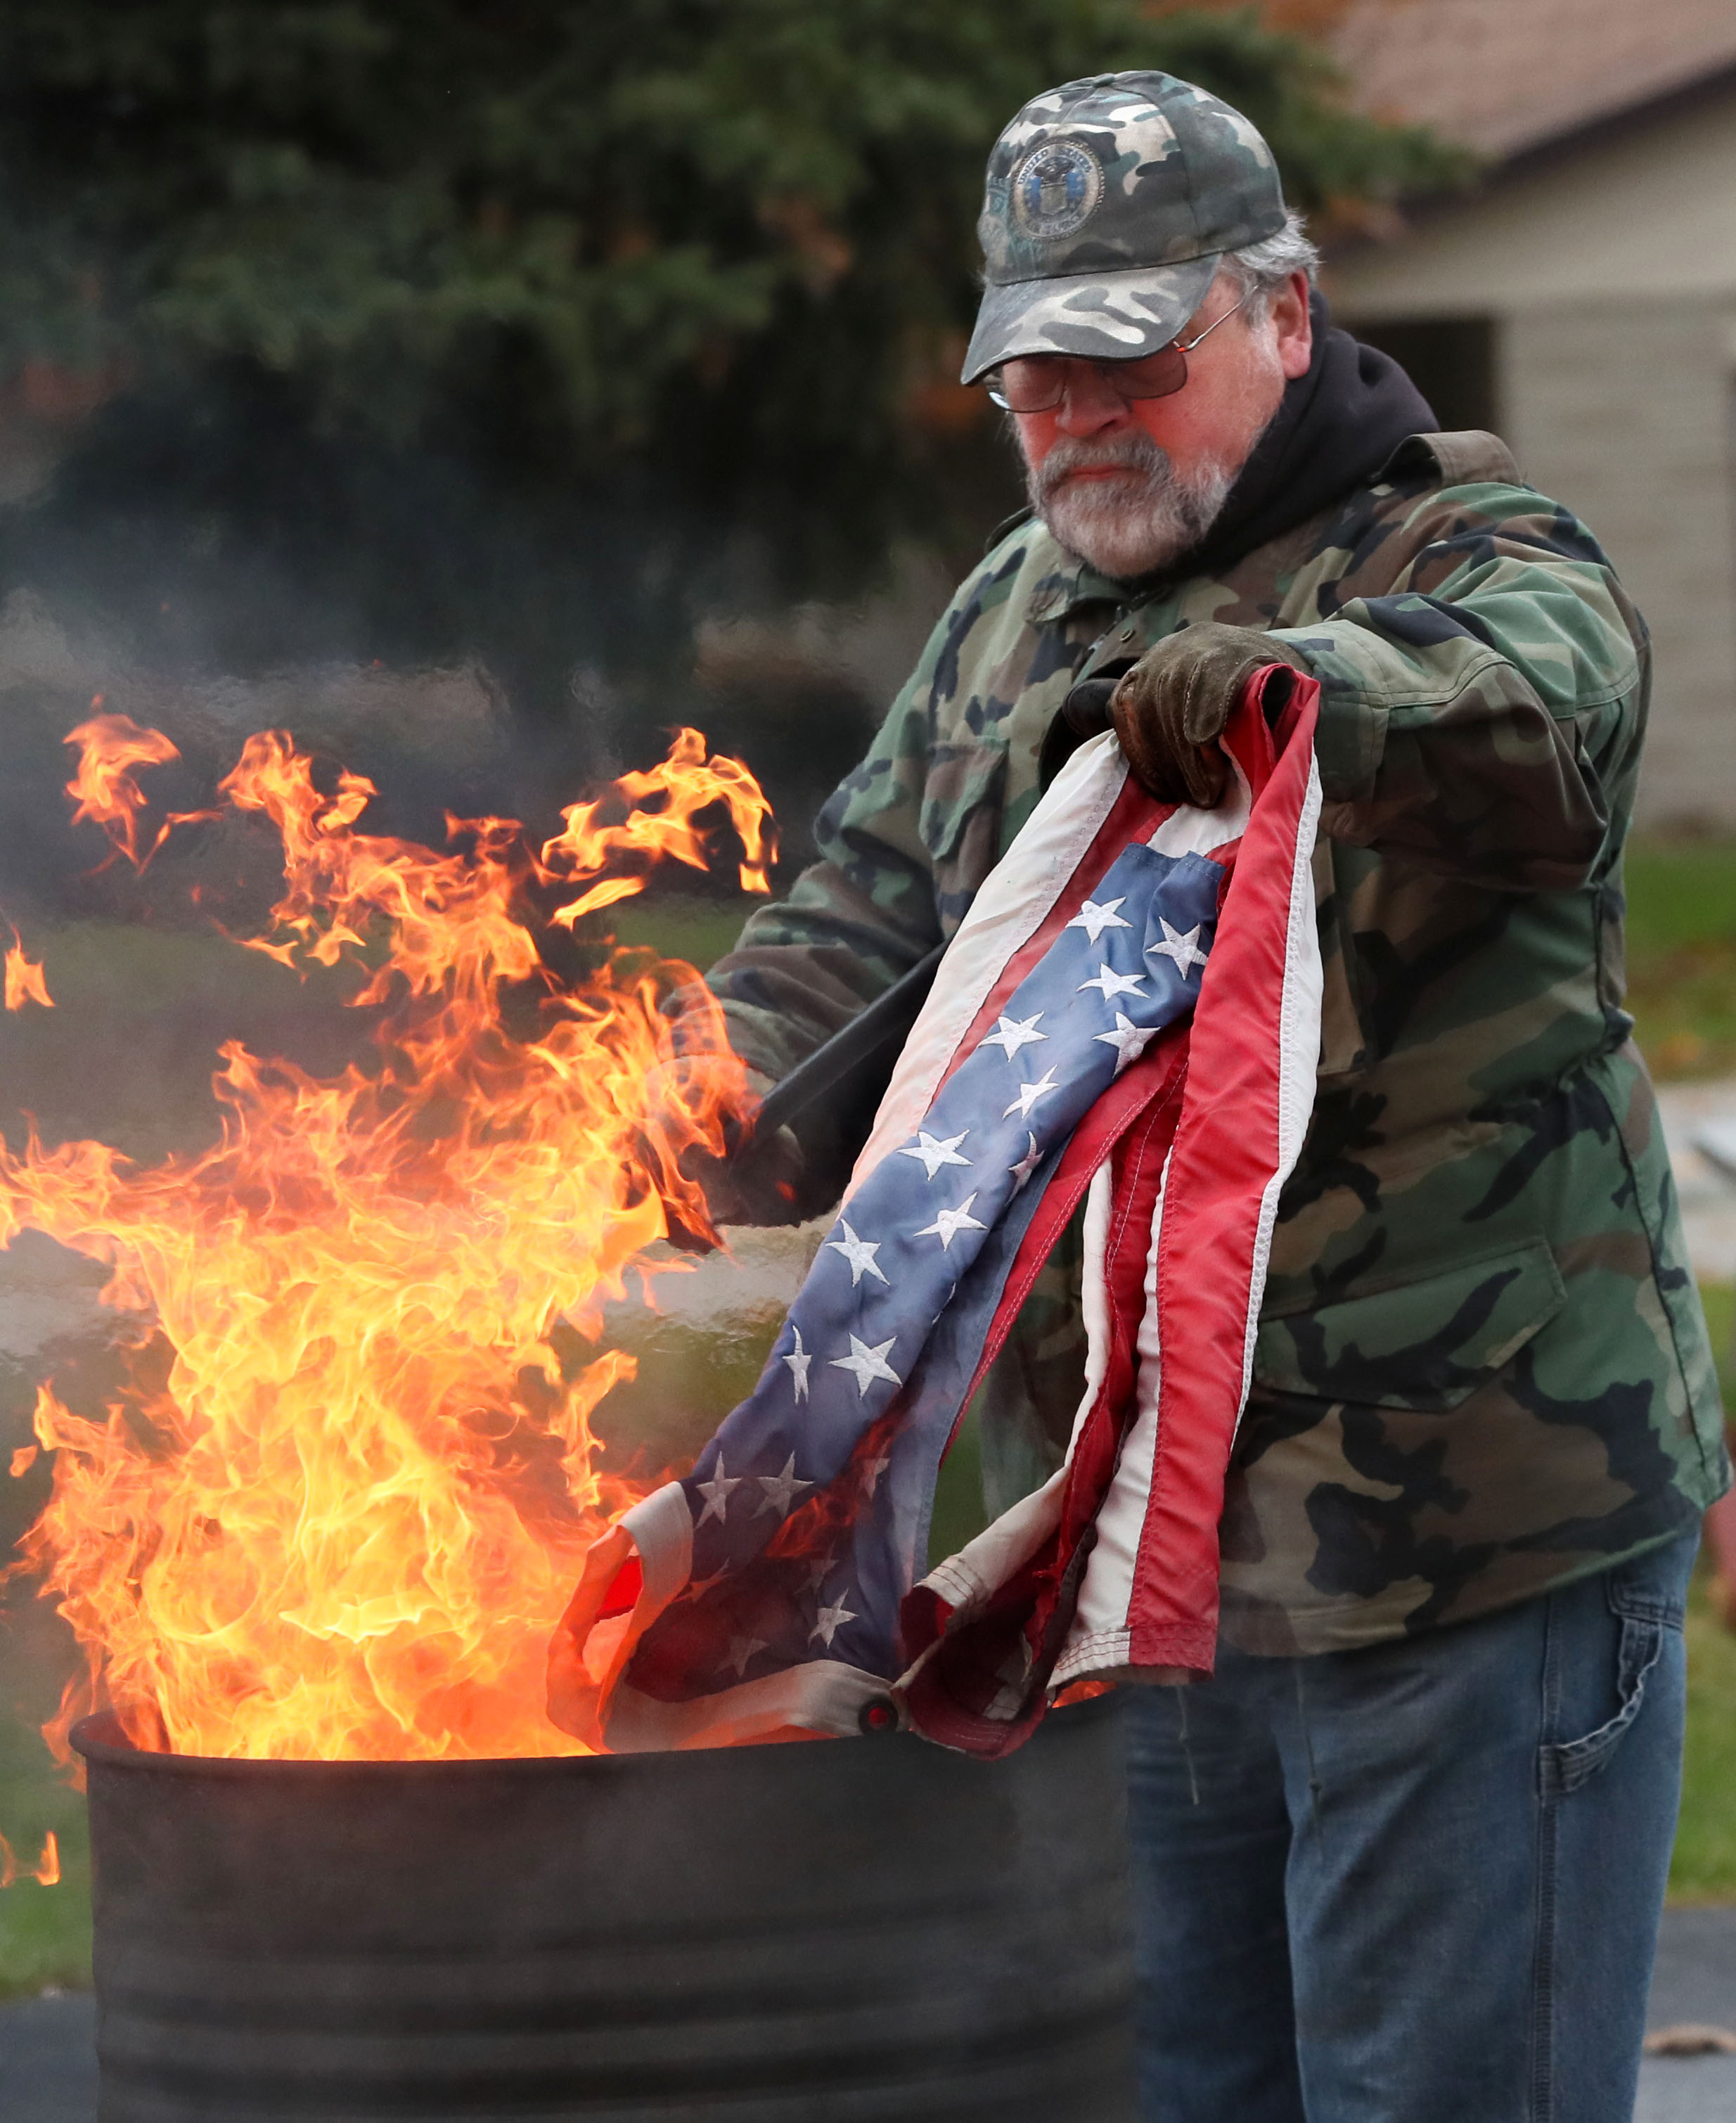 Here post member Roger Jenson, lowers a flag to be destroyed into the flames. Photo by Michael Sears/Milwaukee Journal Sentinel